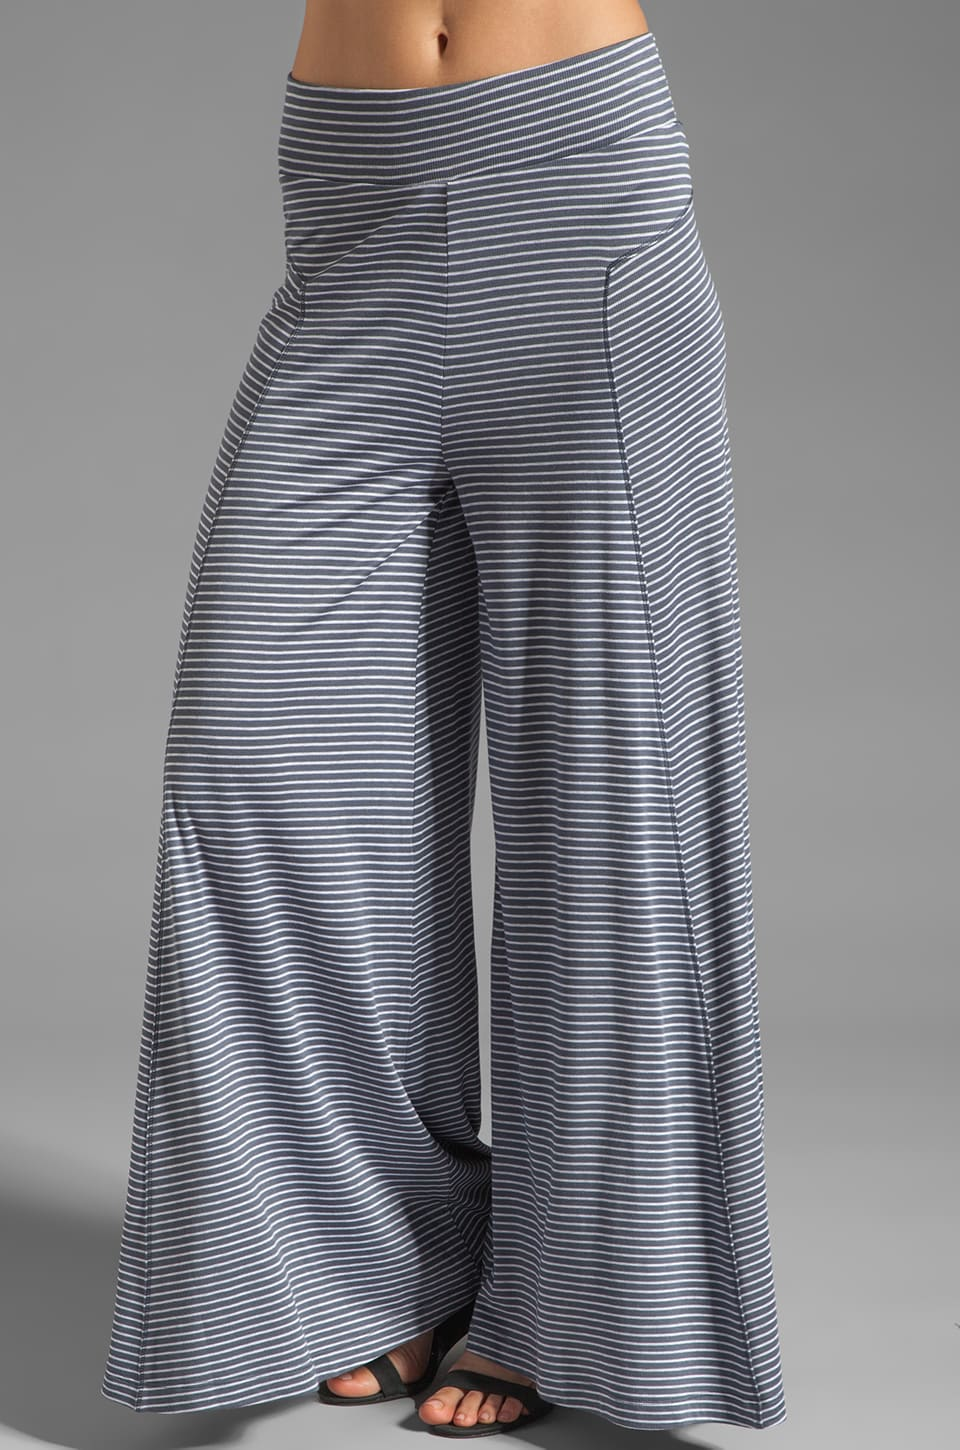 Heather Seamed Palazzo Pant in Granite Pin Stripe